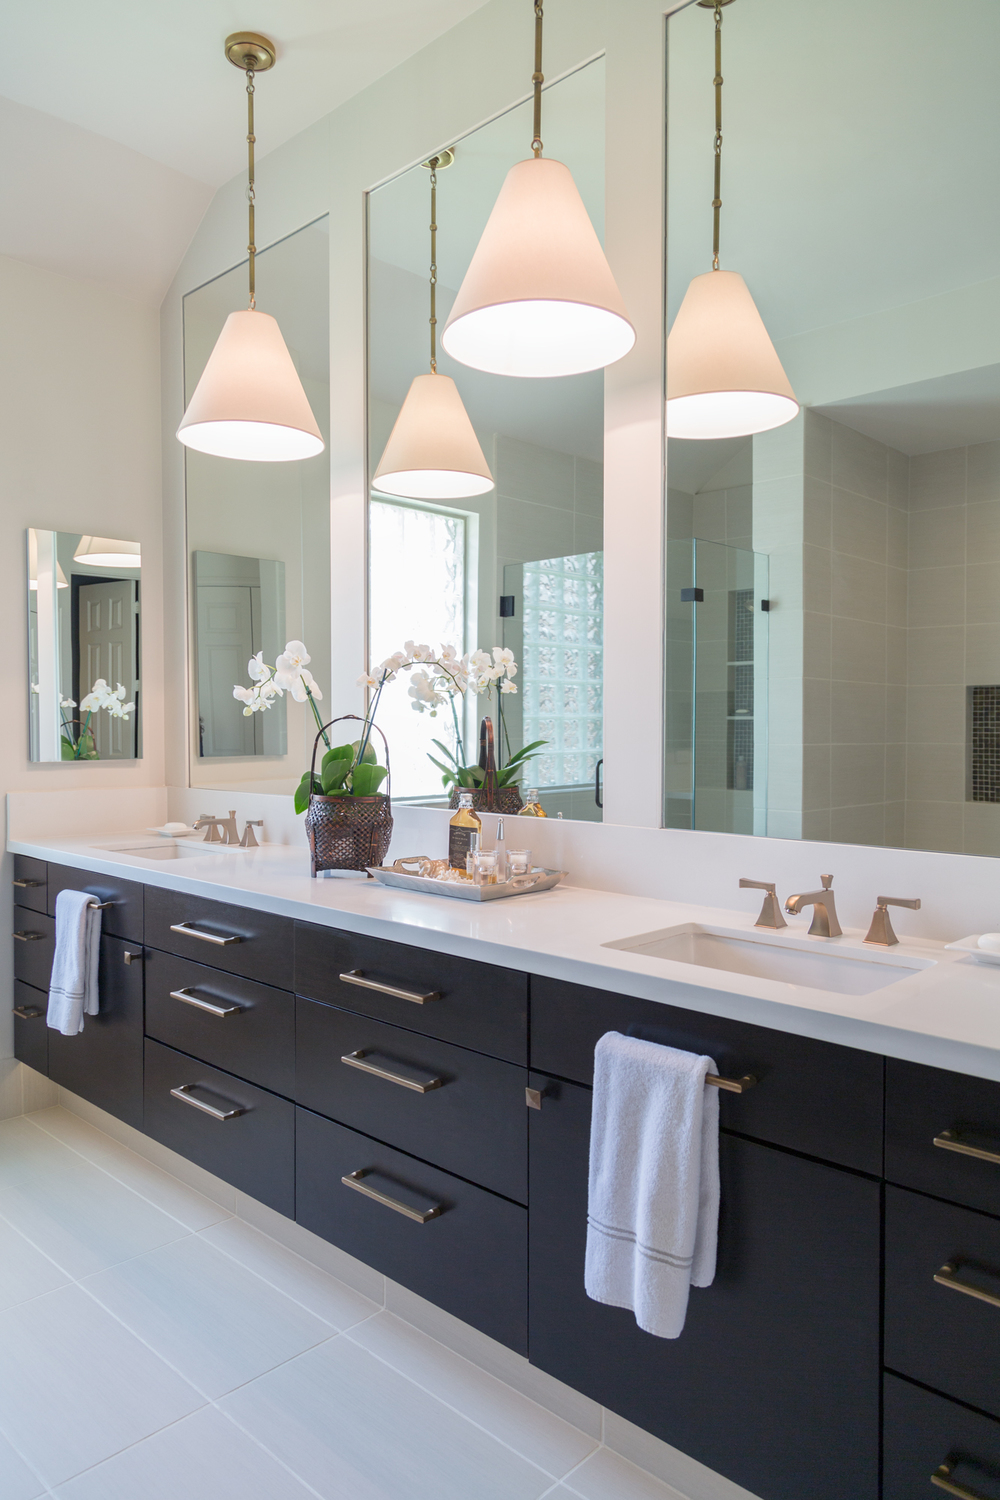 before & after: a master bathroom remodel surprises everyone with unexpected results — designed